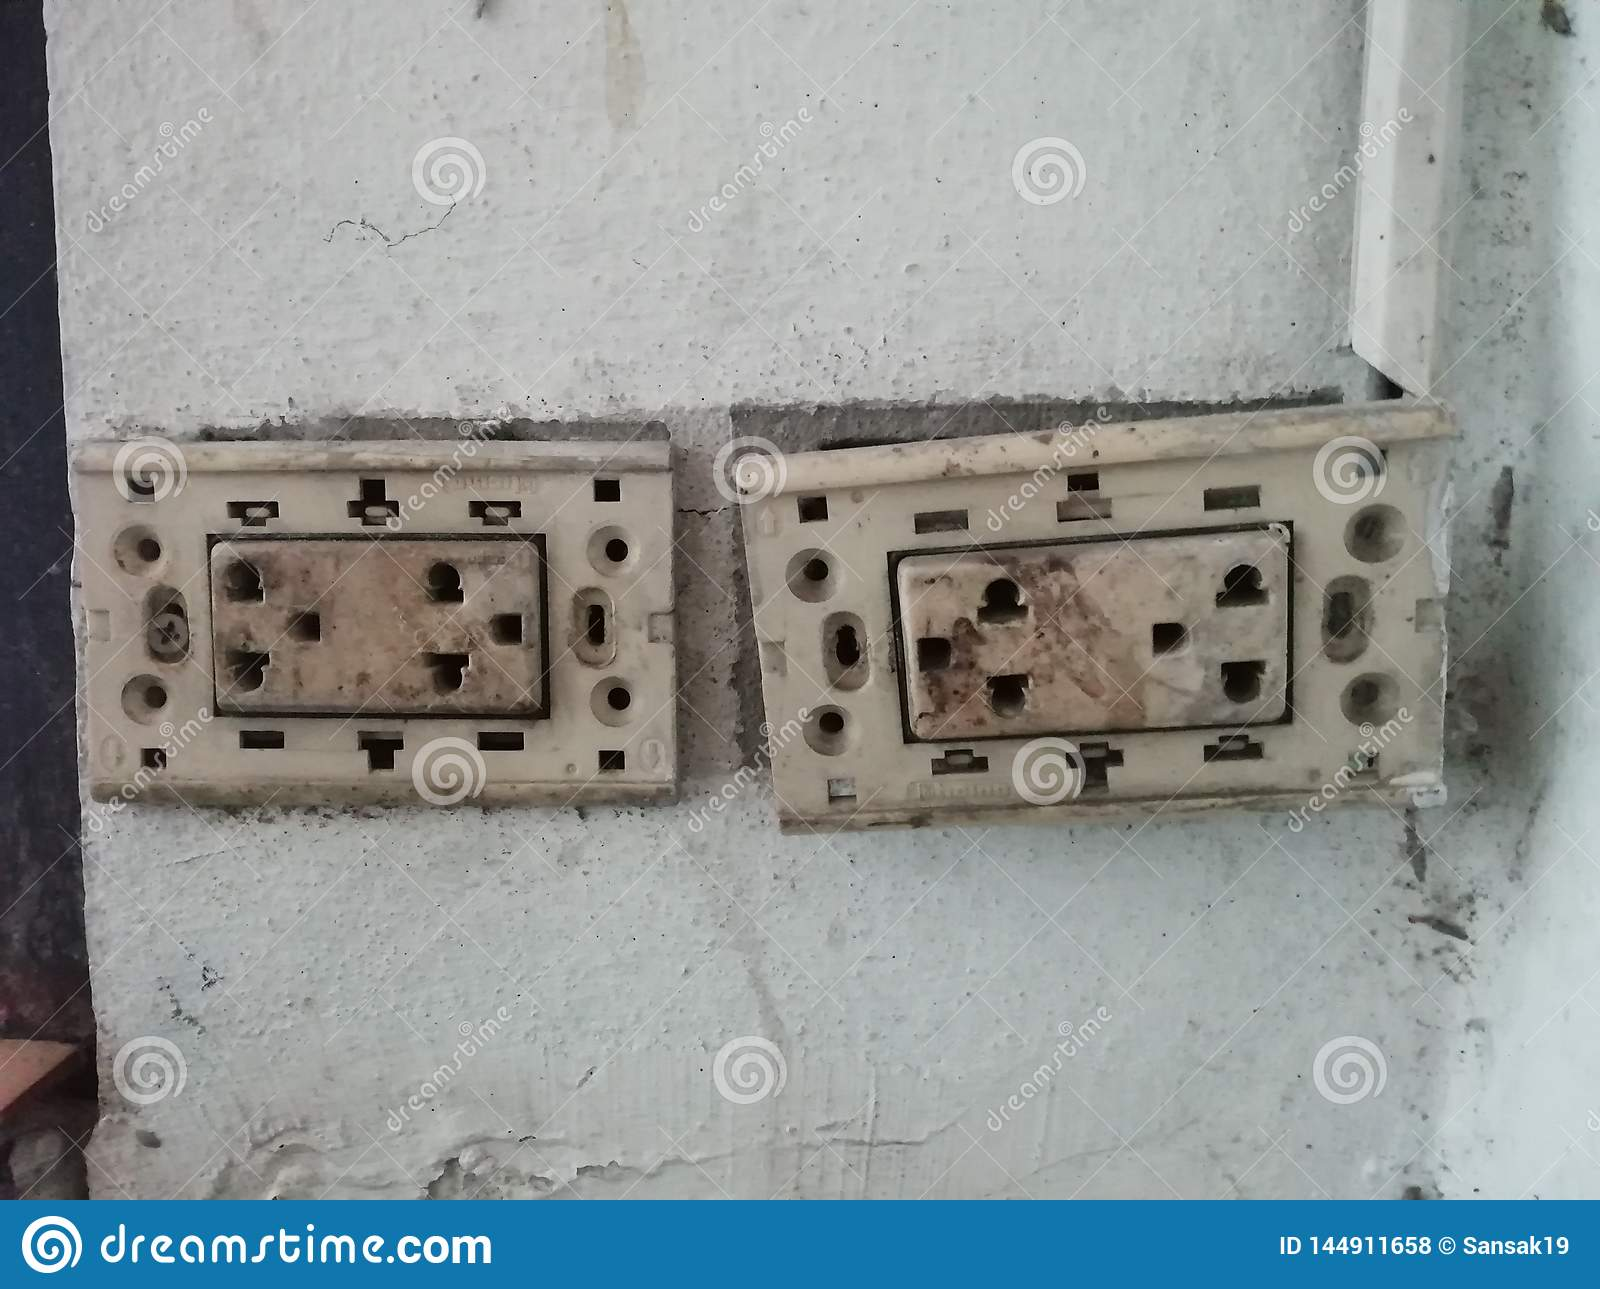 Broken Plug On White Wall, Defective Power Plugs, Electrical Safety